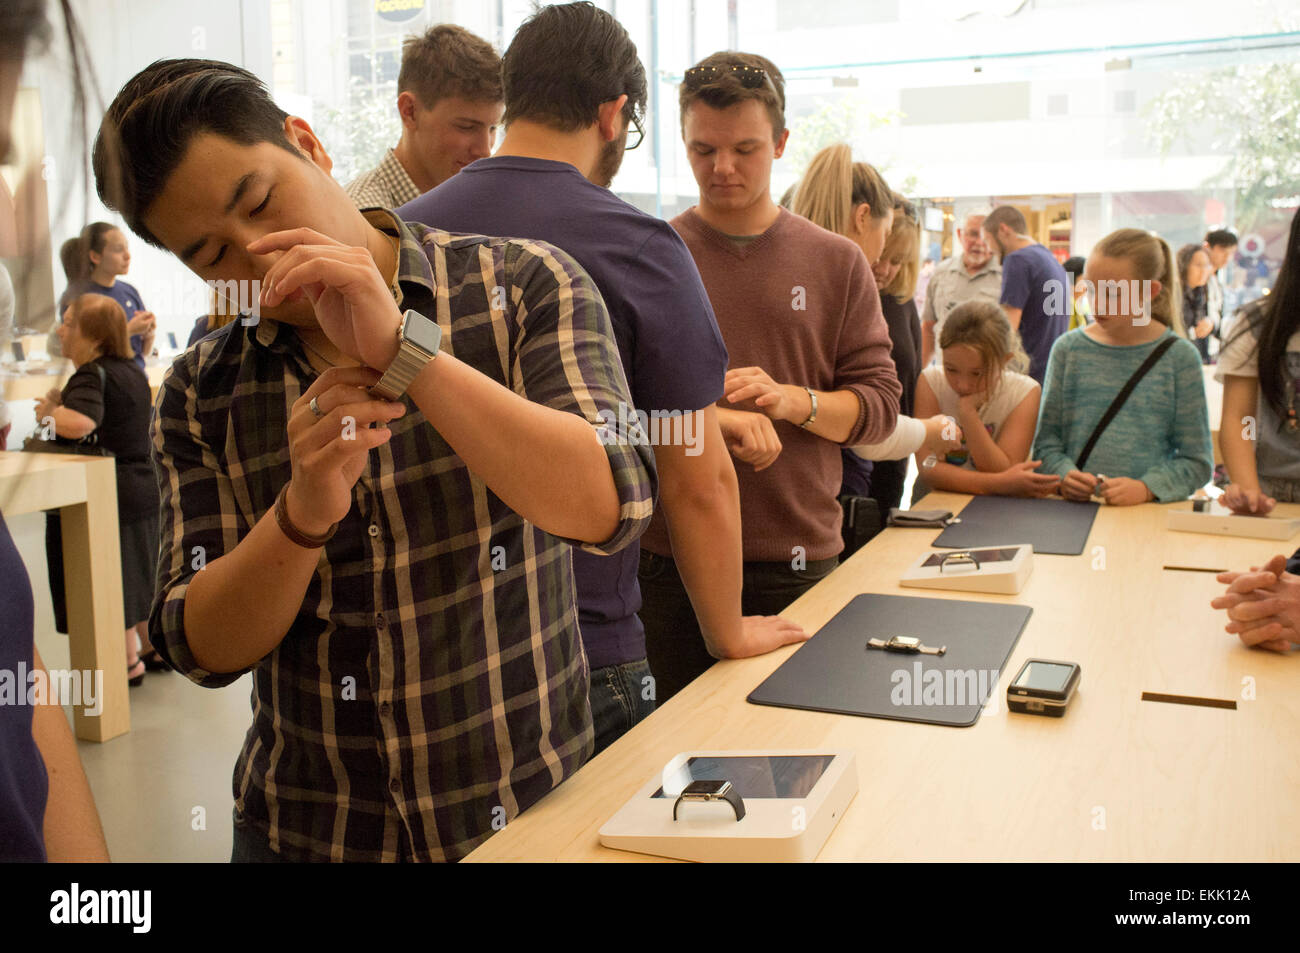 Adelaide, Australia. 11th April 2015. Apple watch is available for customers at Apple stores in Adelaide Australia Stock Photo